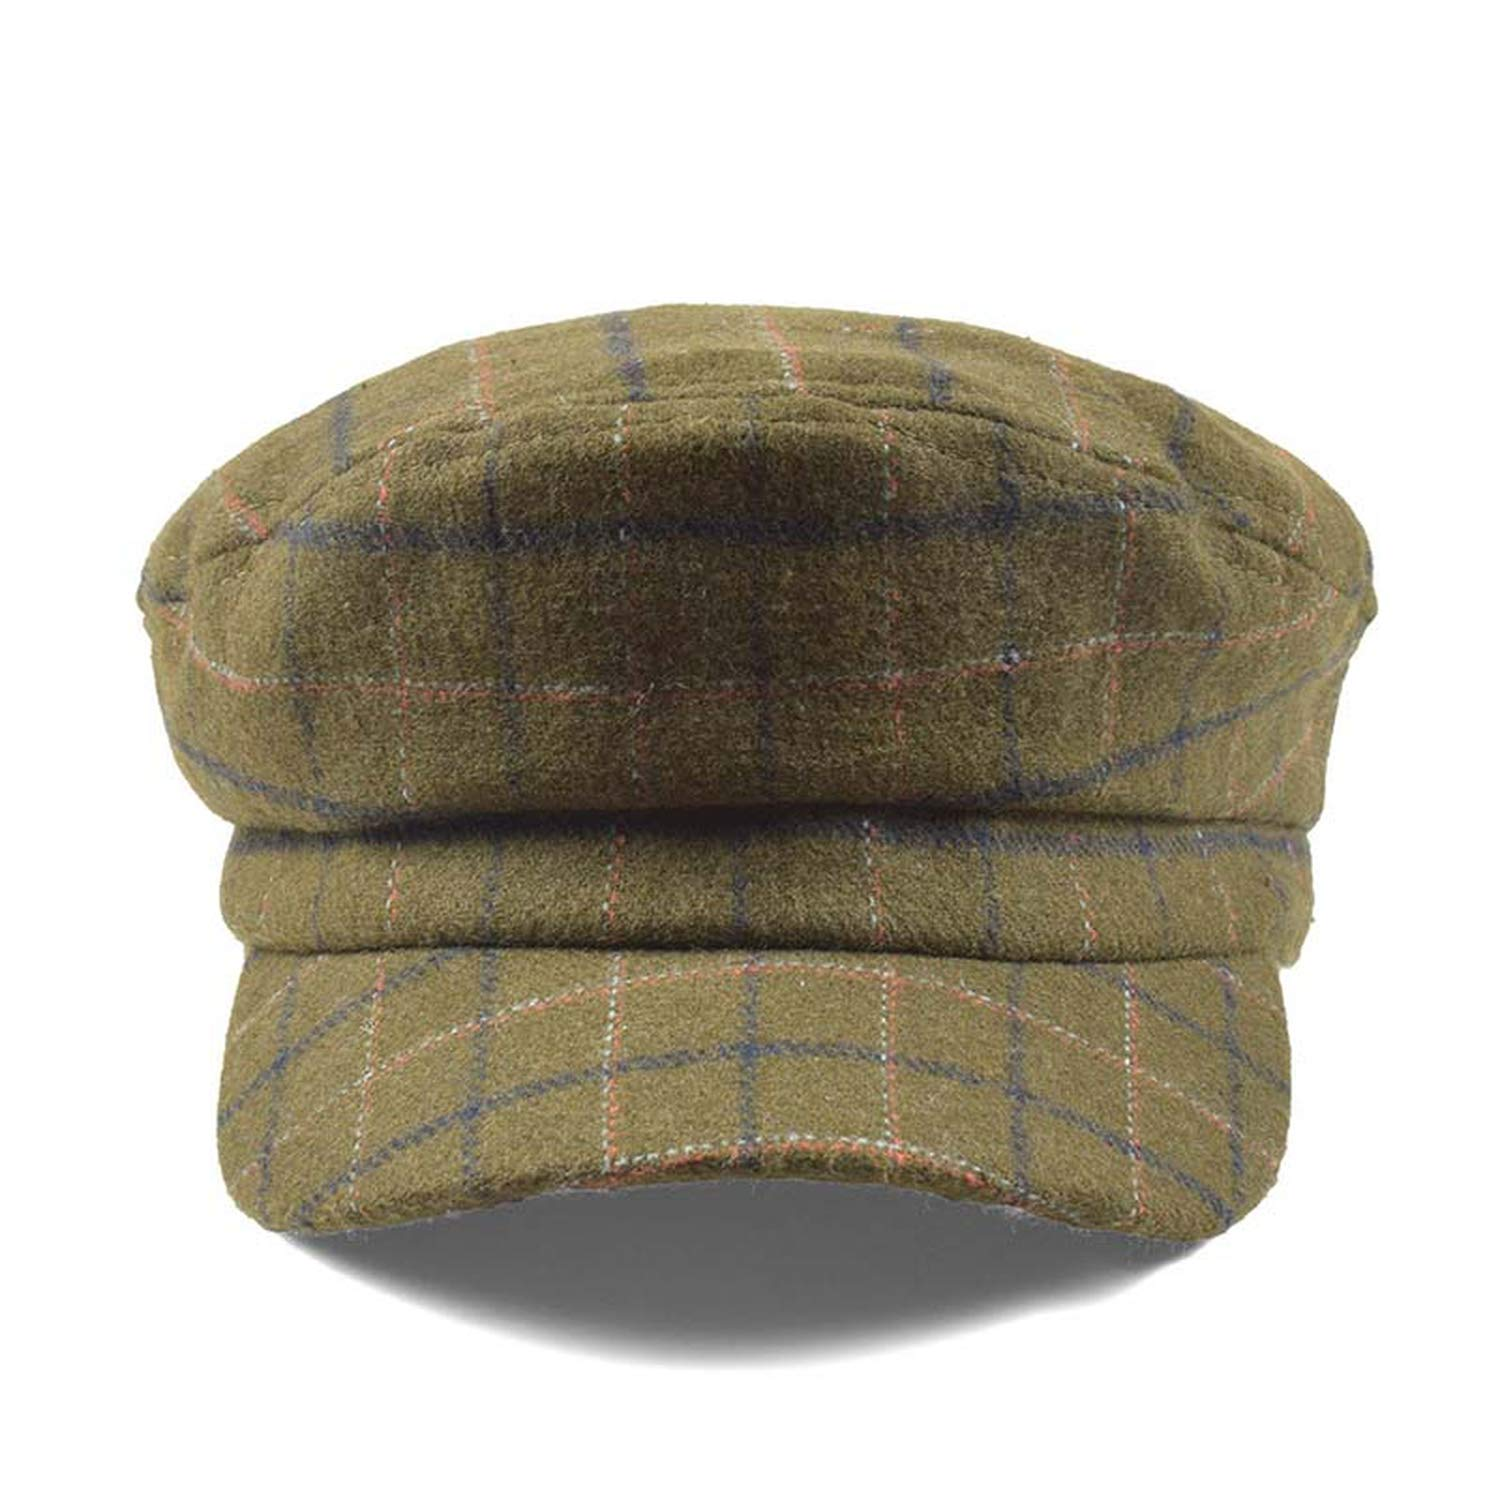 New Military Hats for Women Retro Plaid Berets Autumn Winter Cap Casual Flat Top Army Hat Female Painter Hat